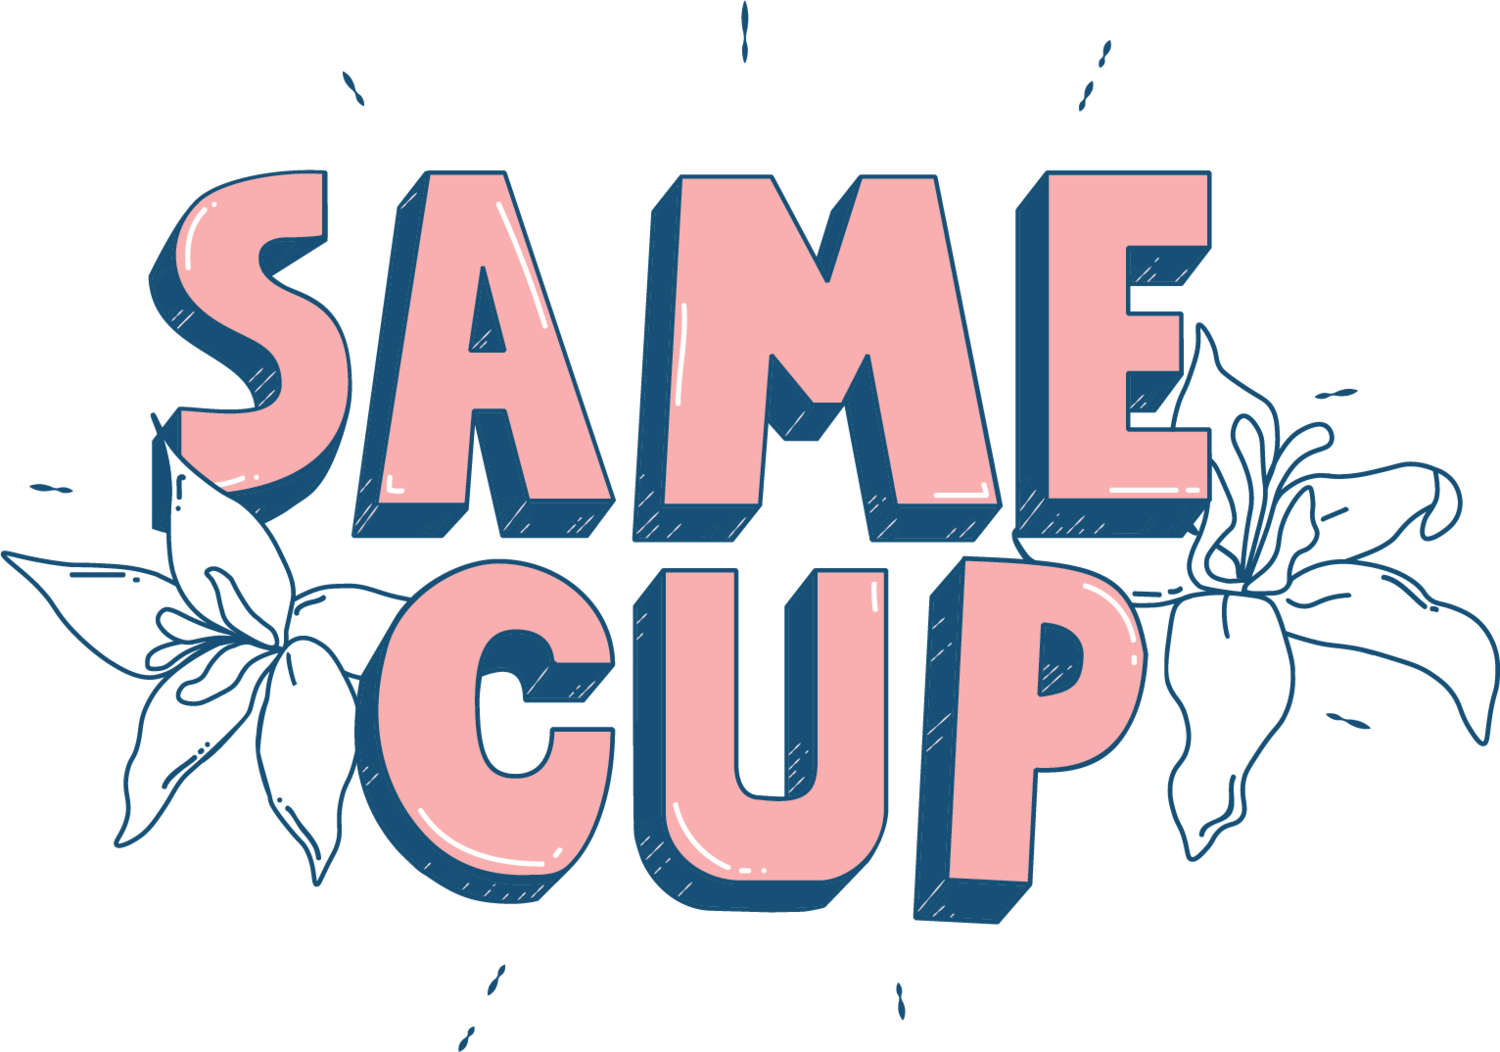 SAME CUP